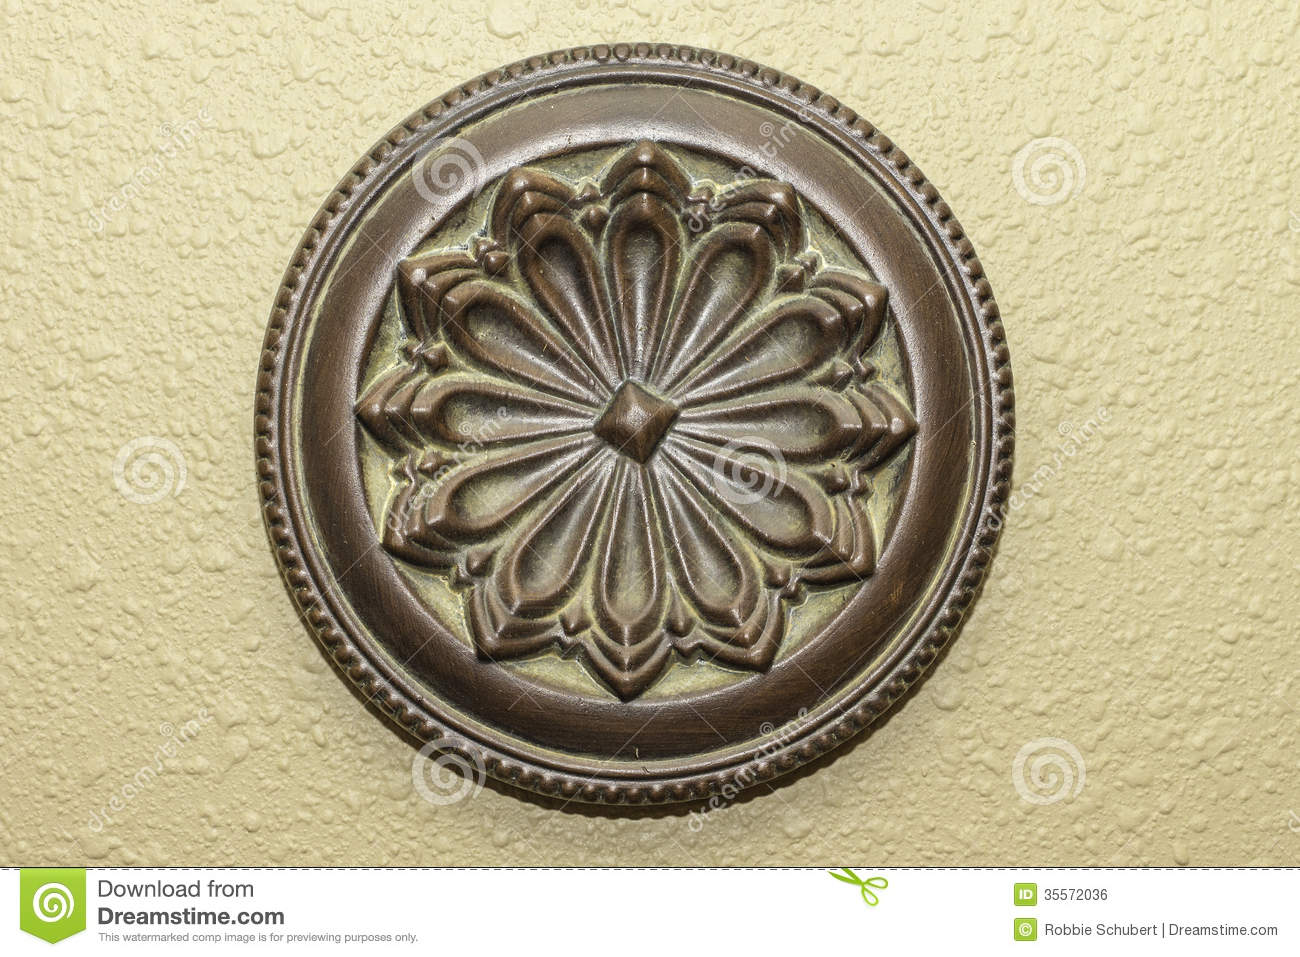 Round Shaped Wall Decor : Decorative round wall art royalty free stock image